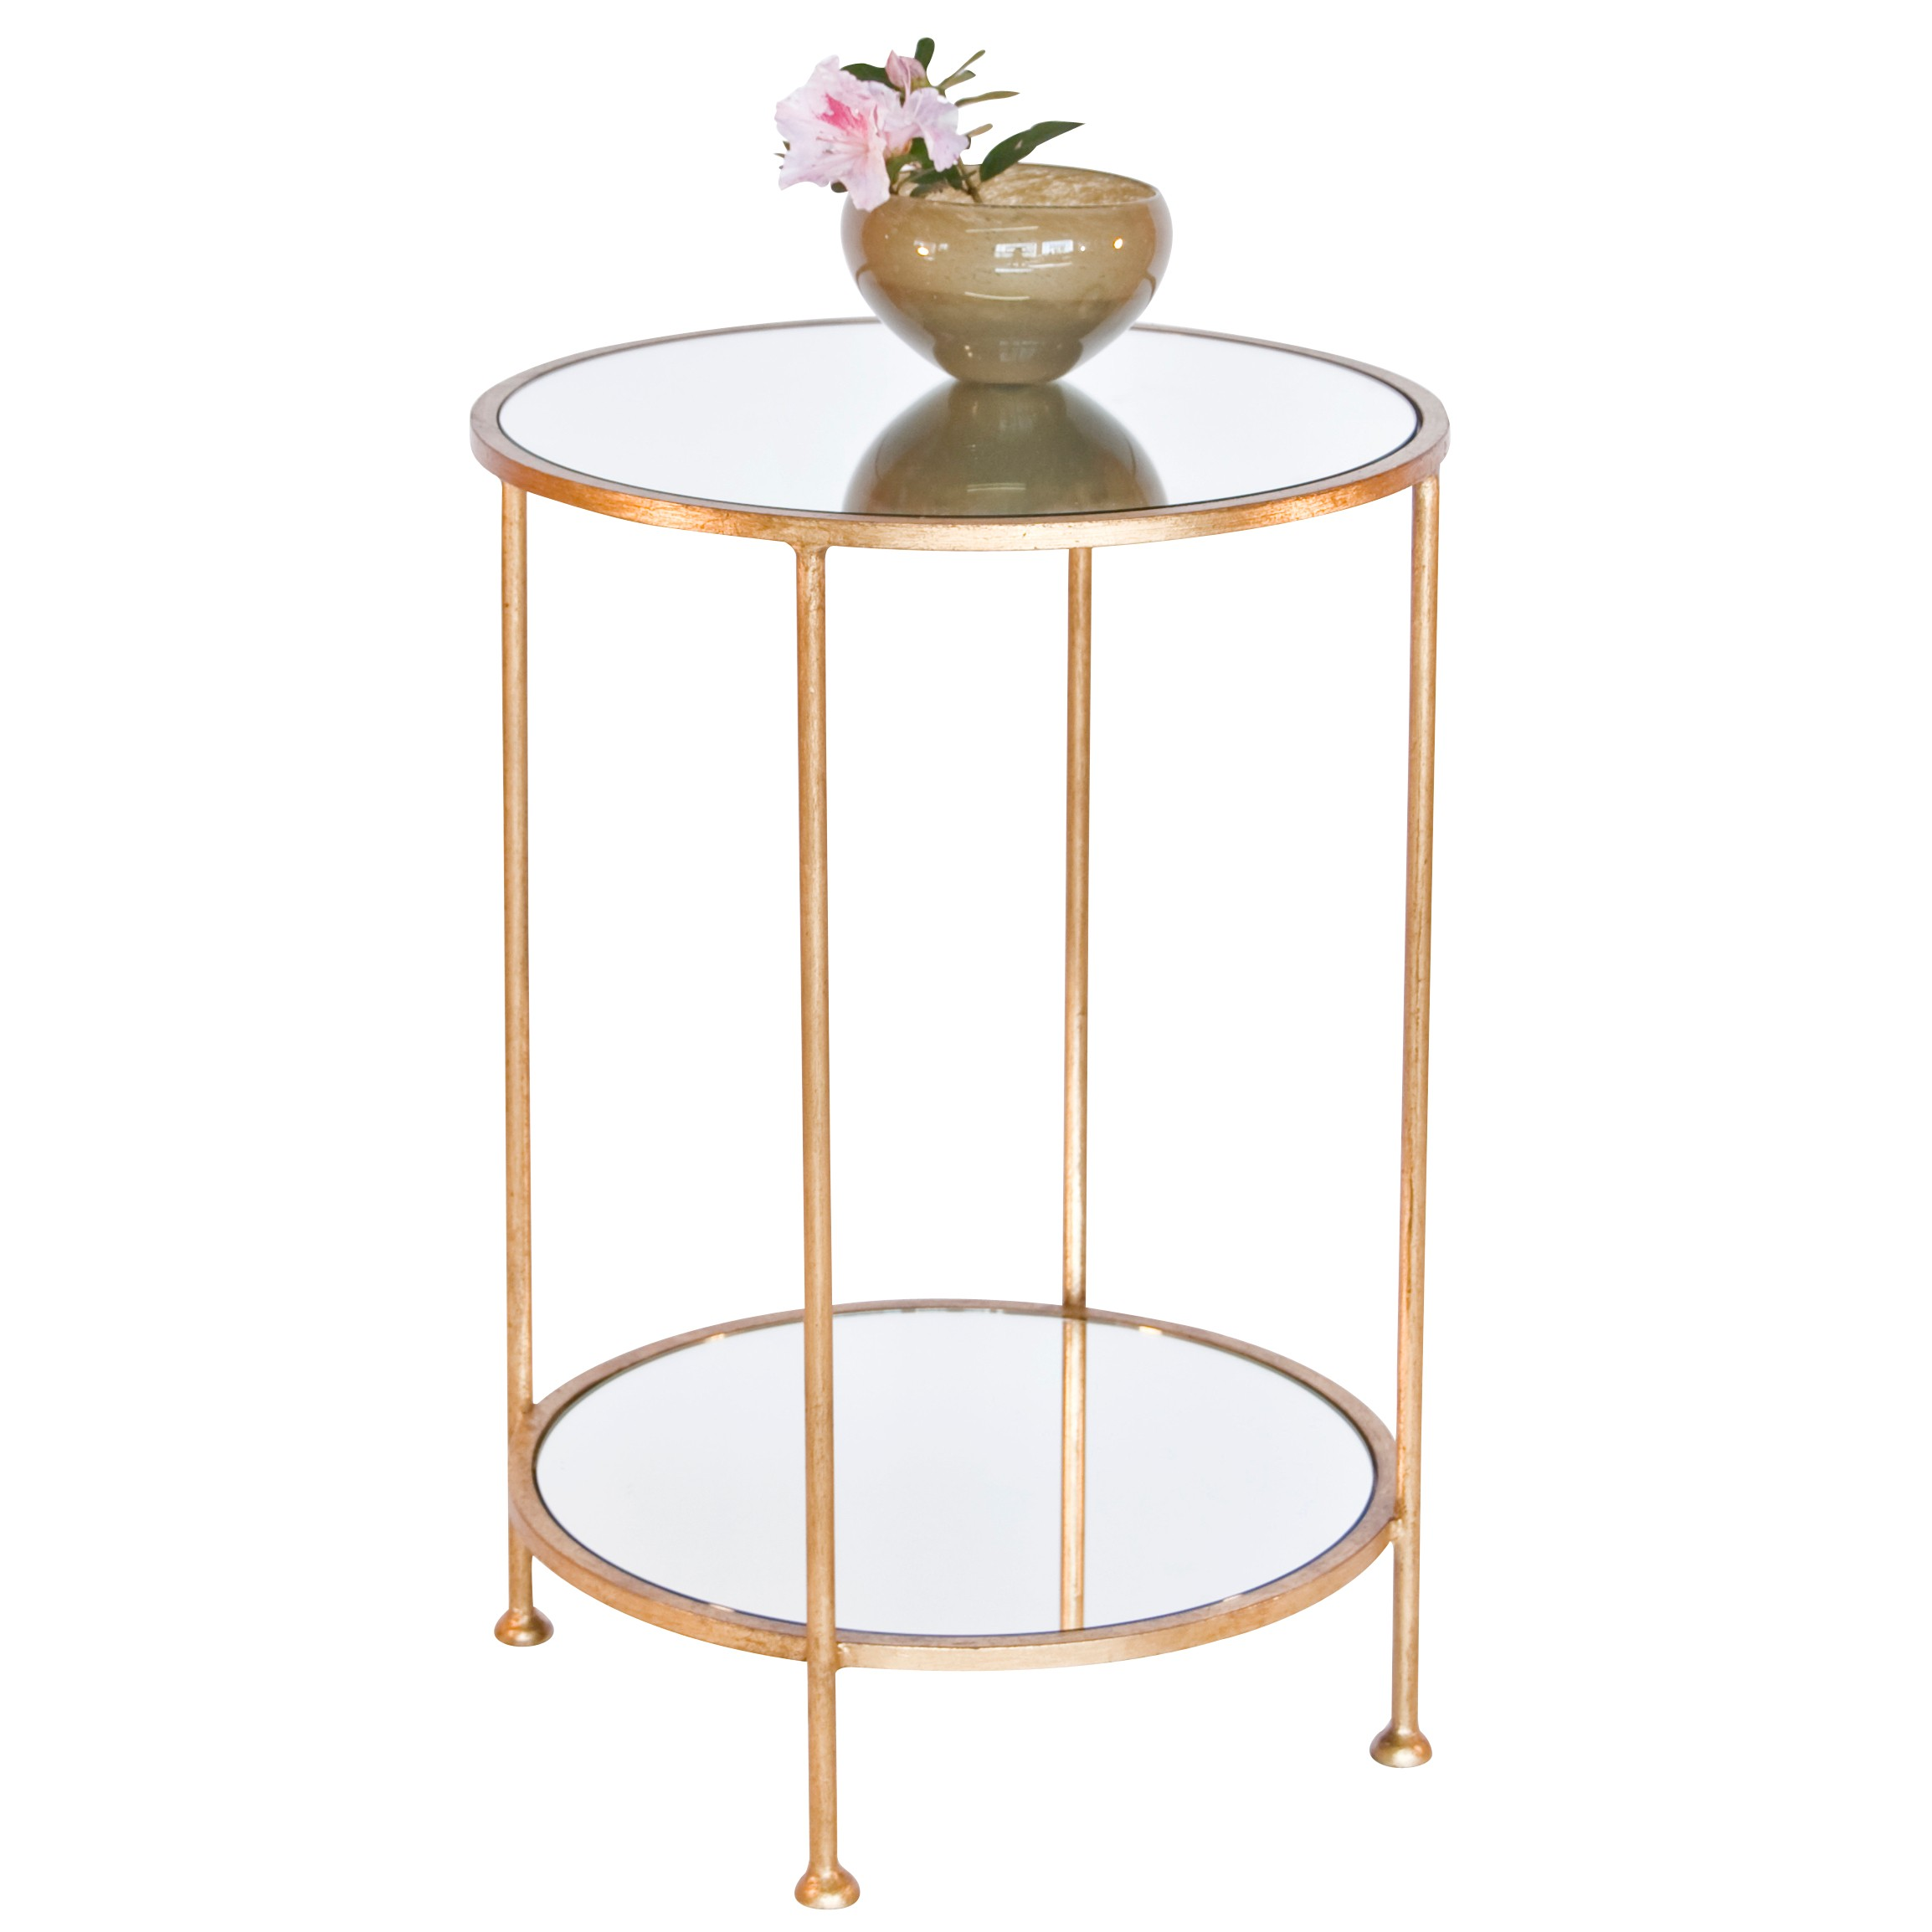 amazing small metal accent table with coffee inspiration worlds away chico tier gold leaf side mirror top diy outdoor hairpin legs black lacquer west elm mid century lamp wall